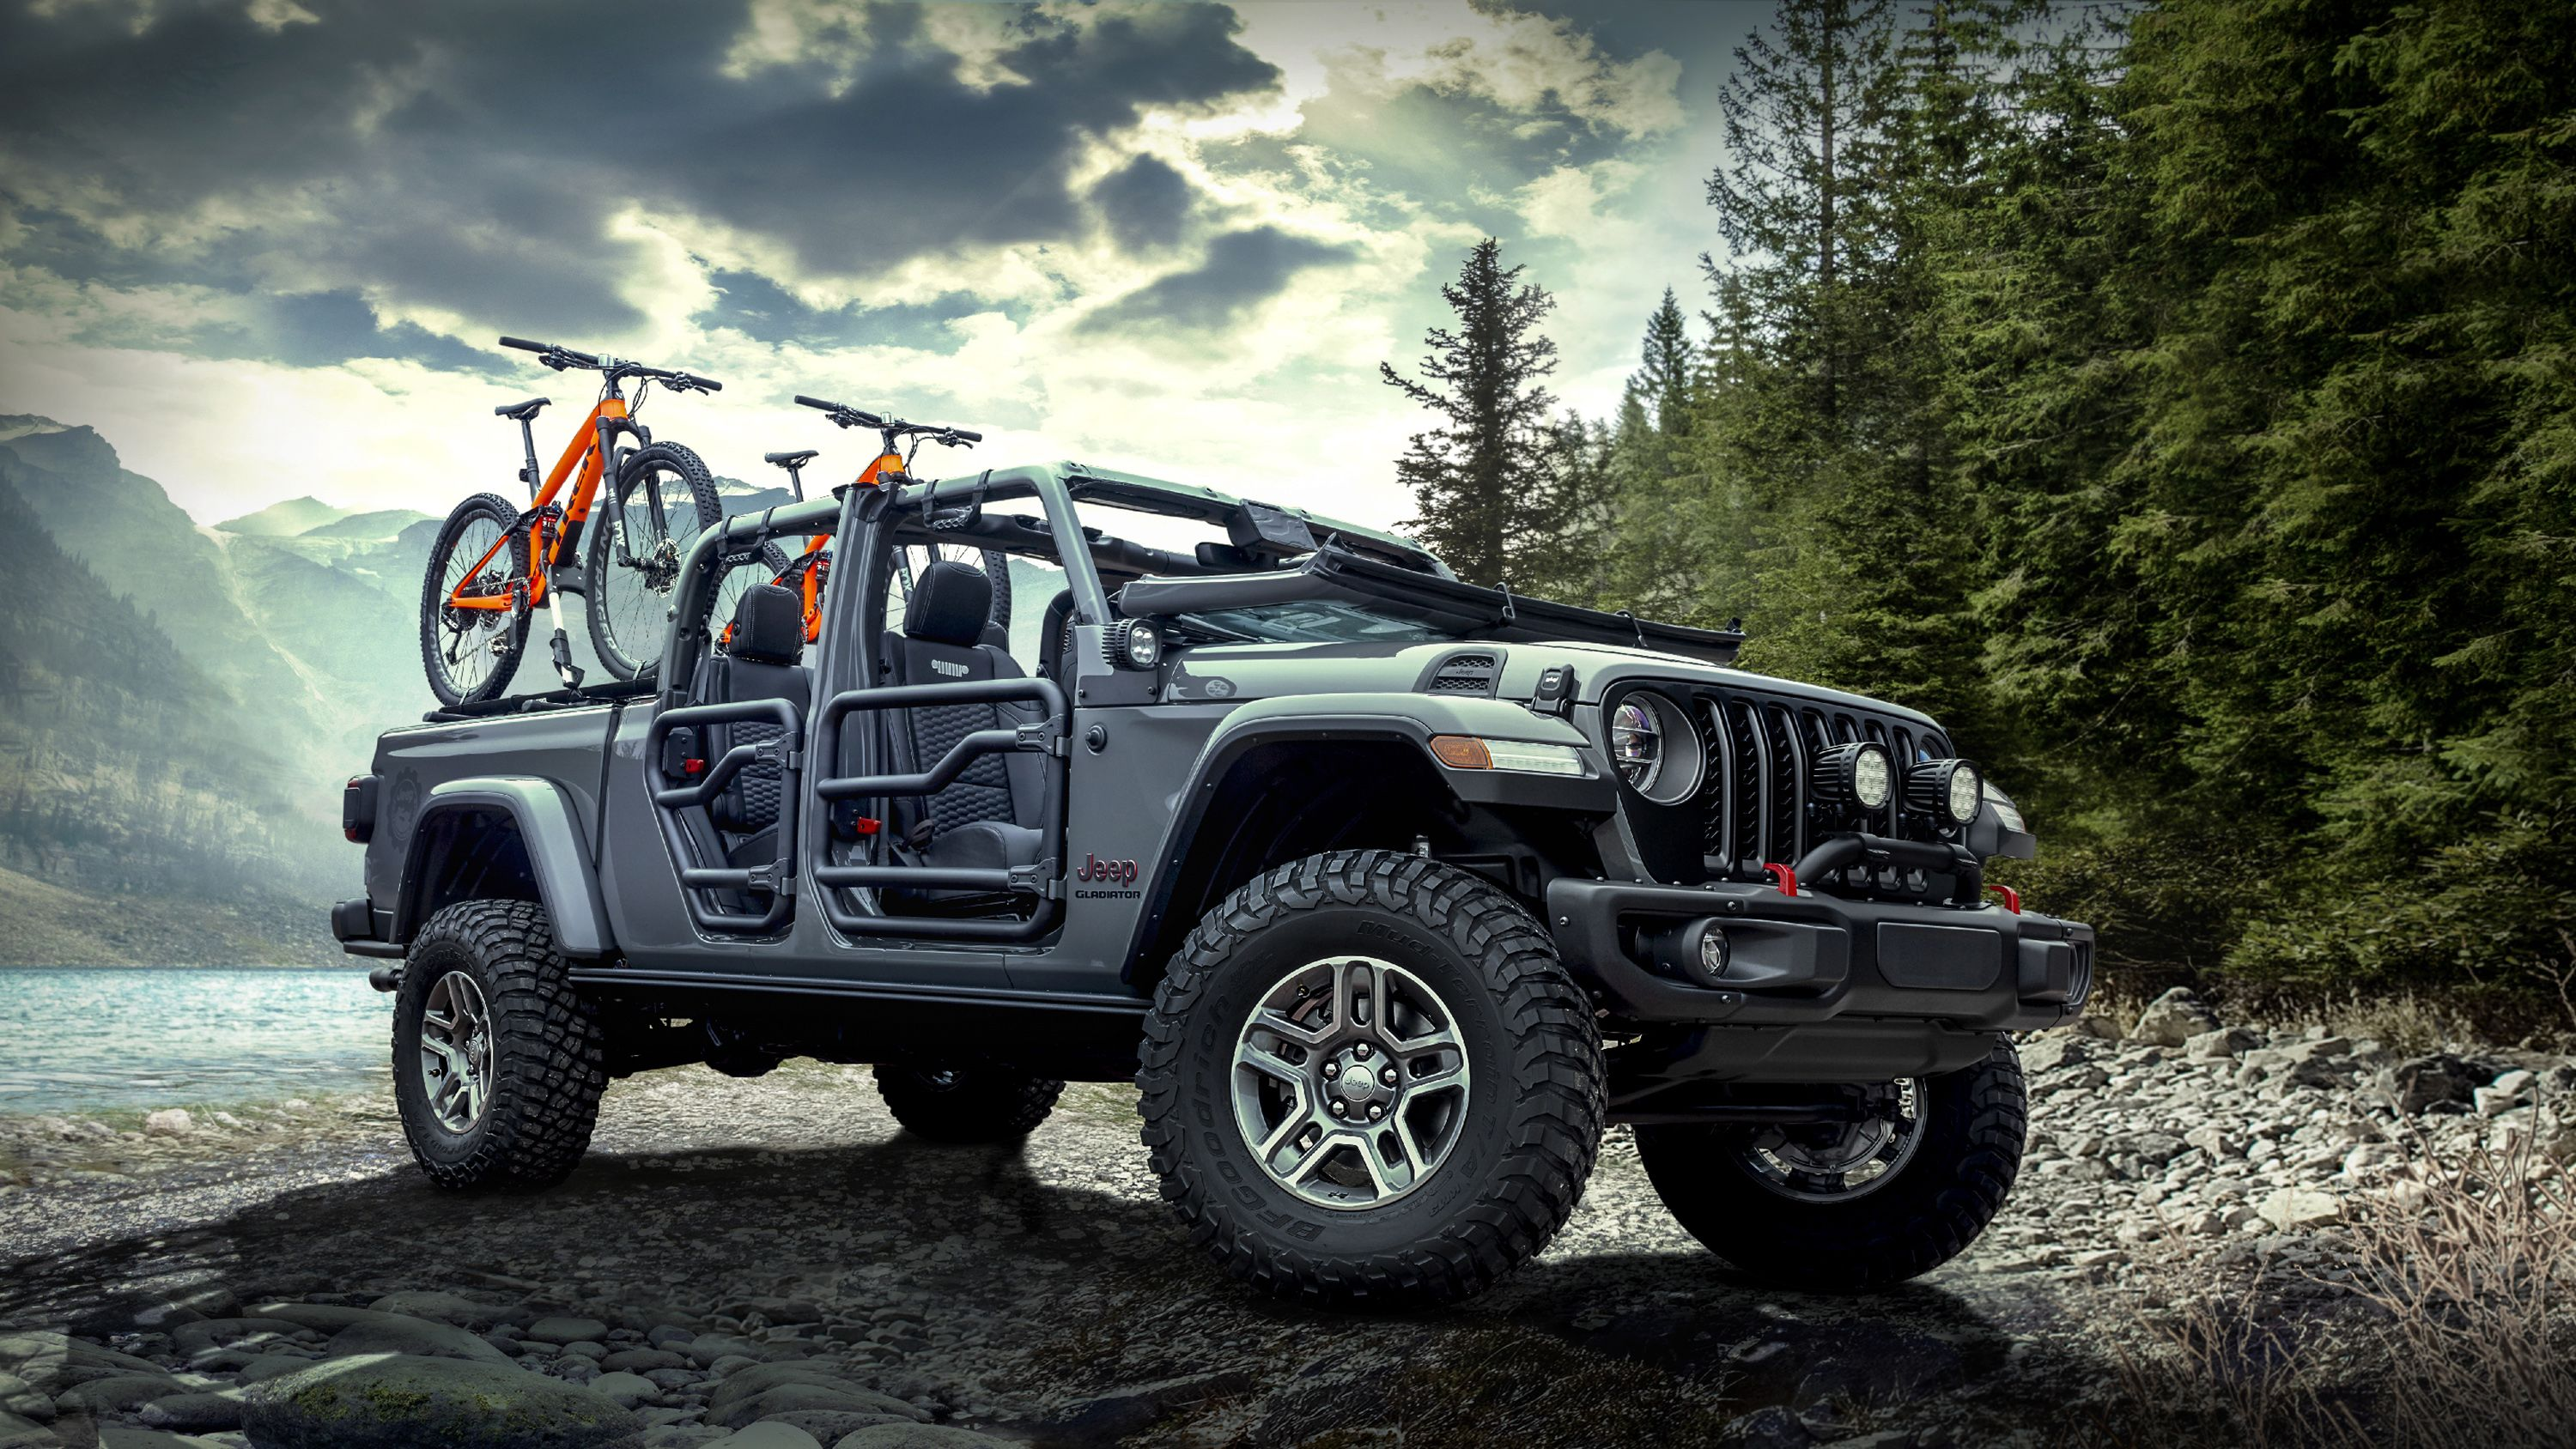 2020 Mopar Jeep Gladiator Rubicon Jeep gladiator, Mopar